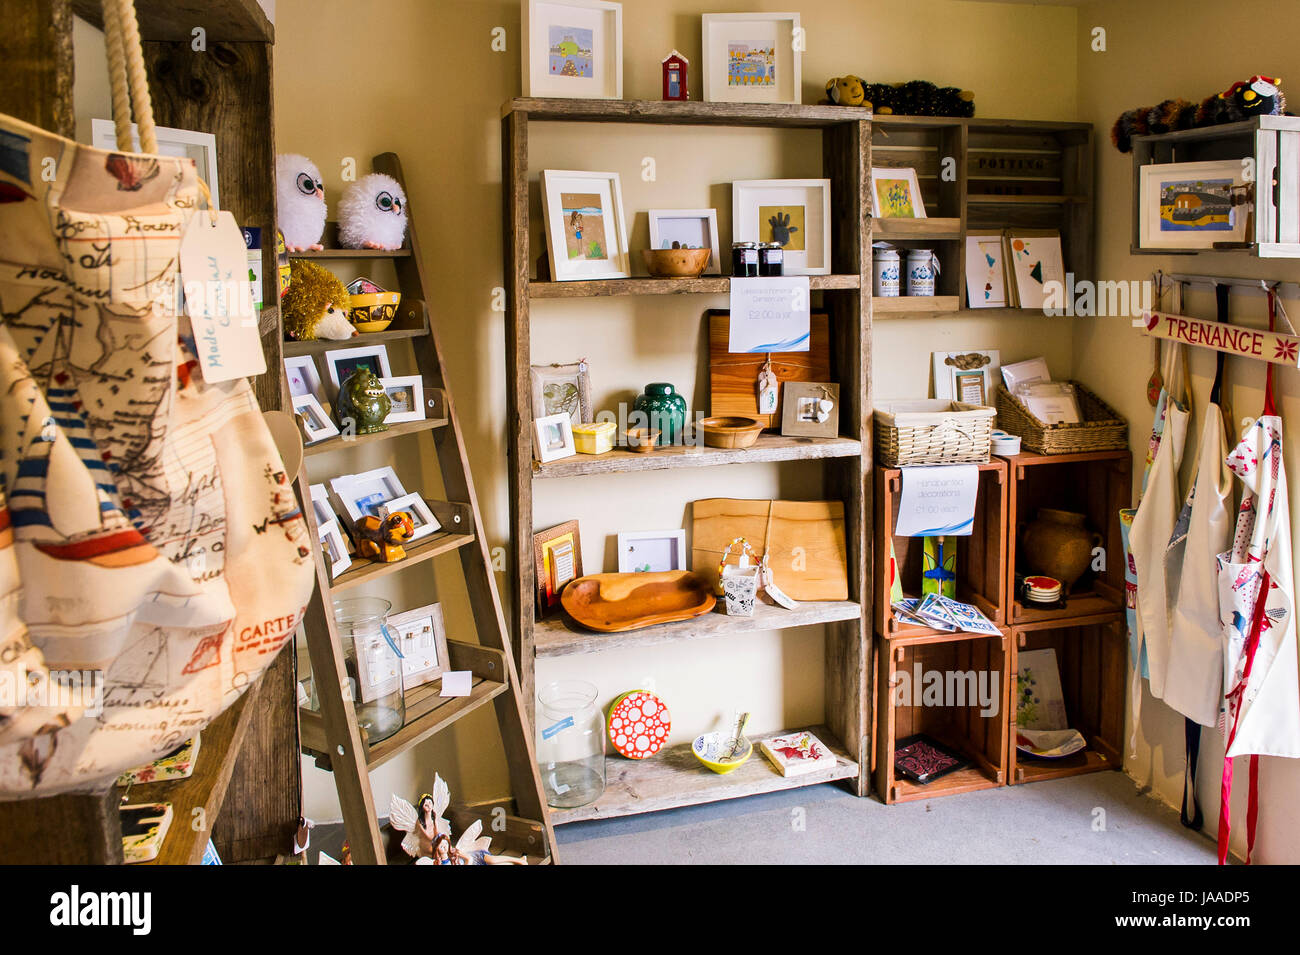 Gifts on display in a small gift shop Stock Photo: 144059837 - Alamy